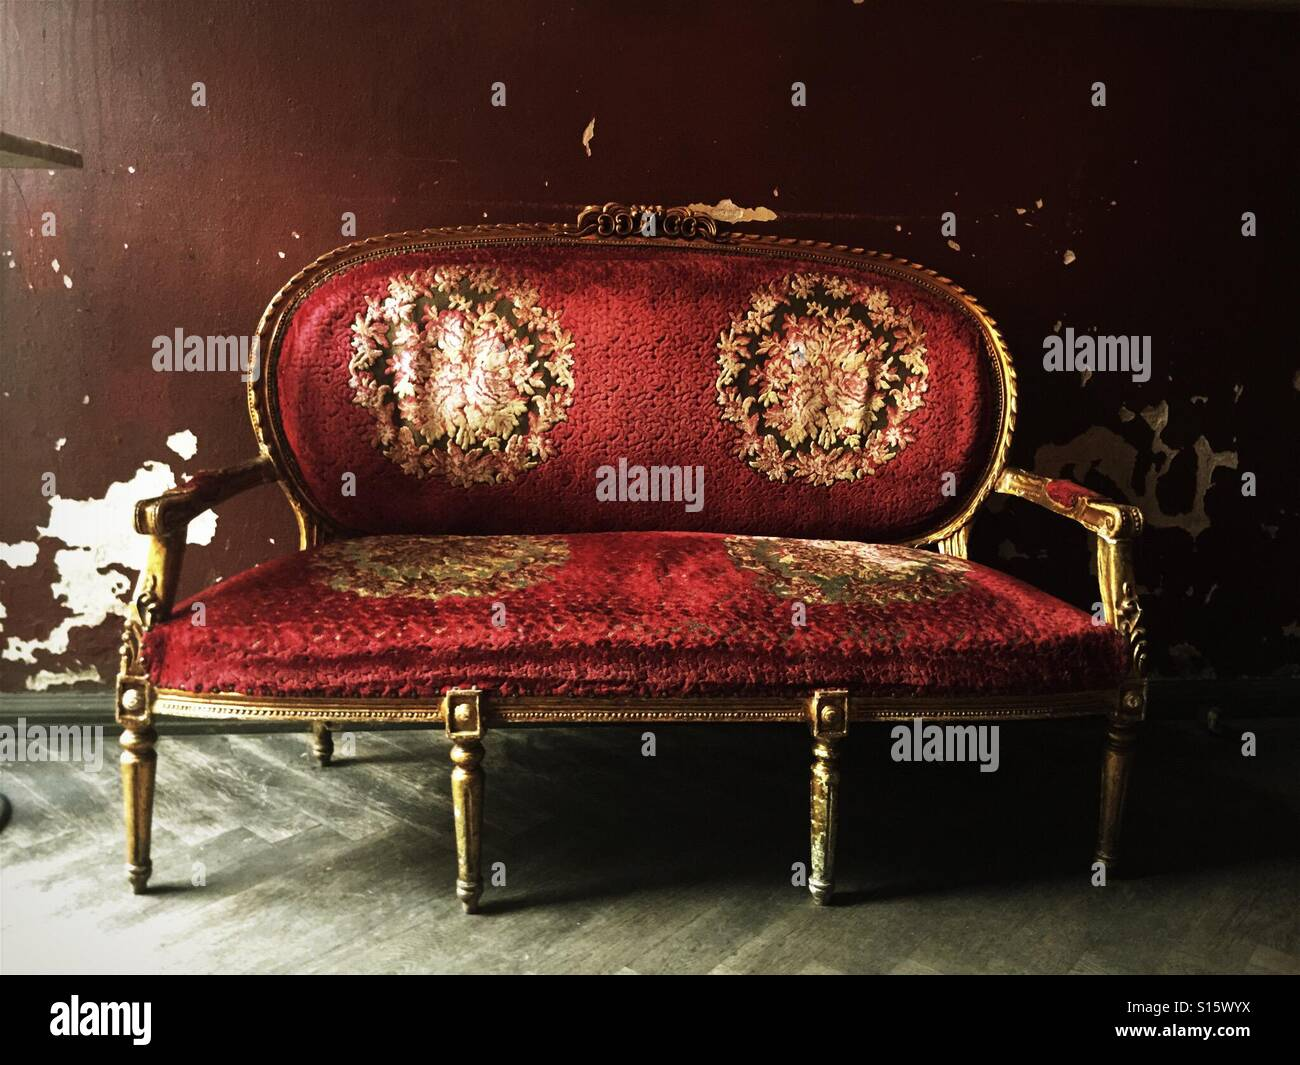 Stupendous Antique Old Red Ornate Sofa Stock Photo 310531422 Alamy Gmtry Best Dining Table And Chair Ideas Images Gmtryco